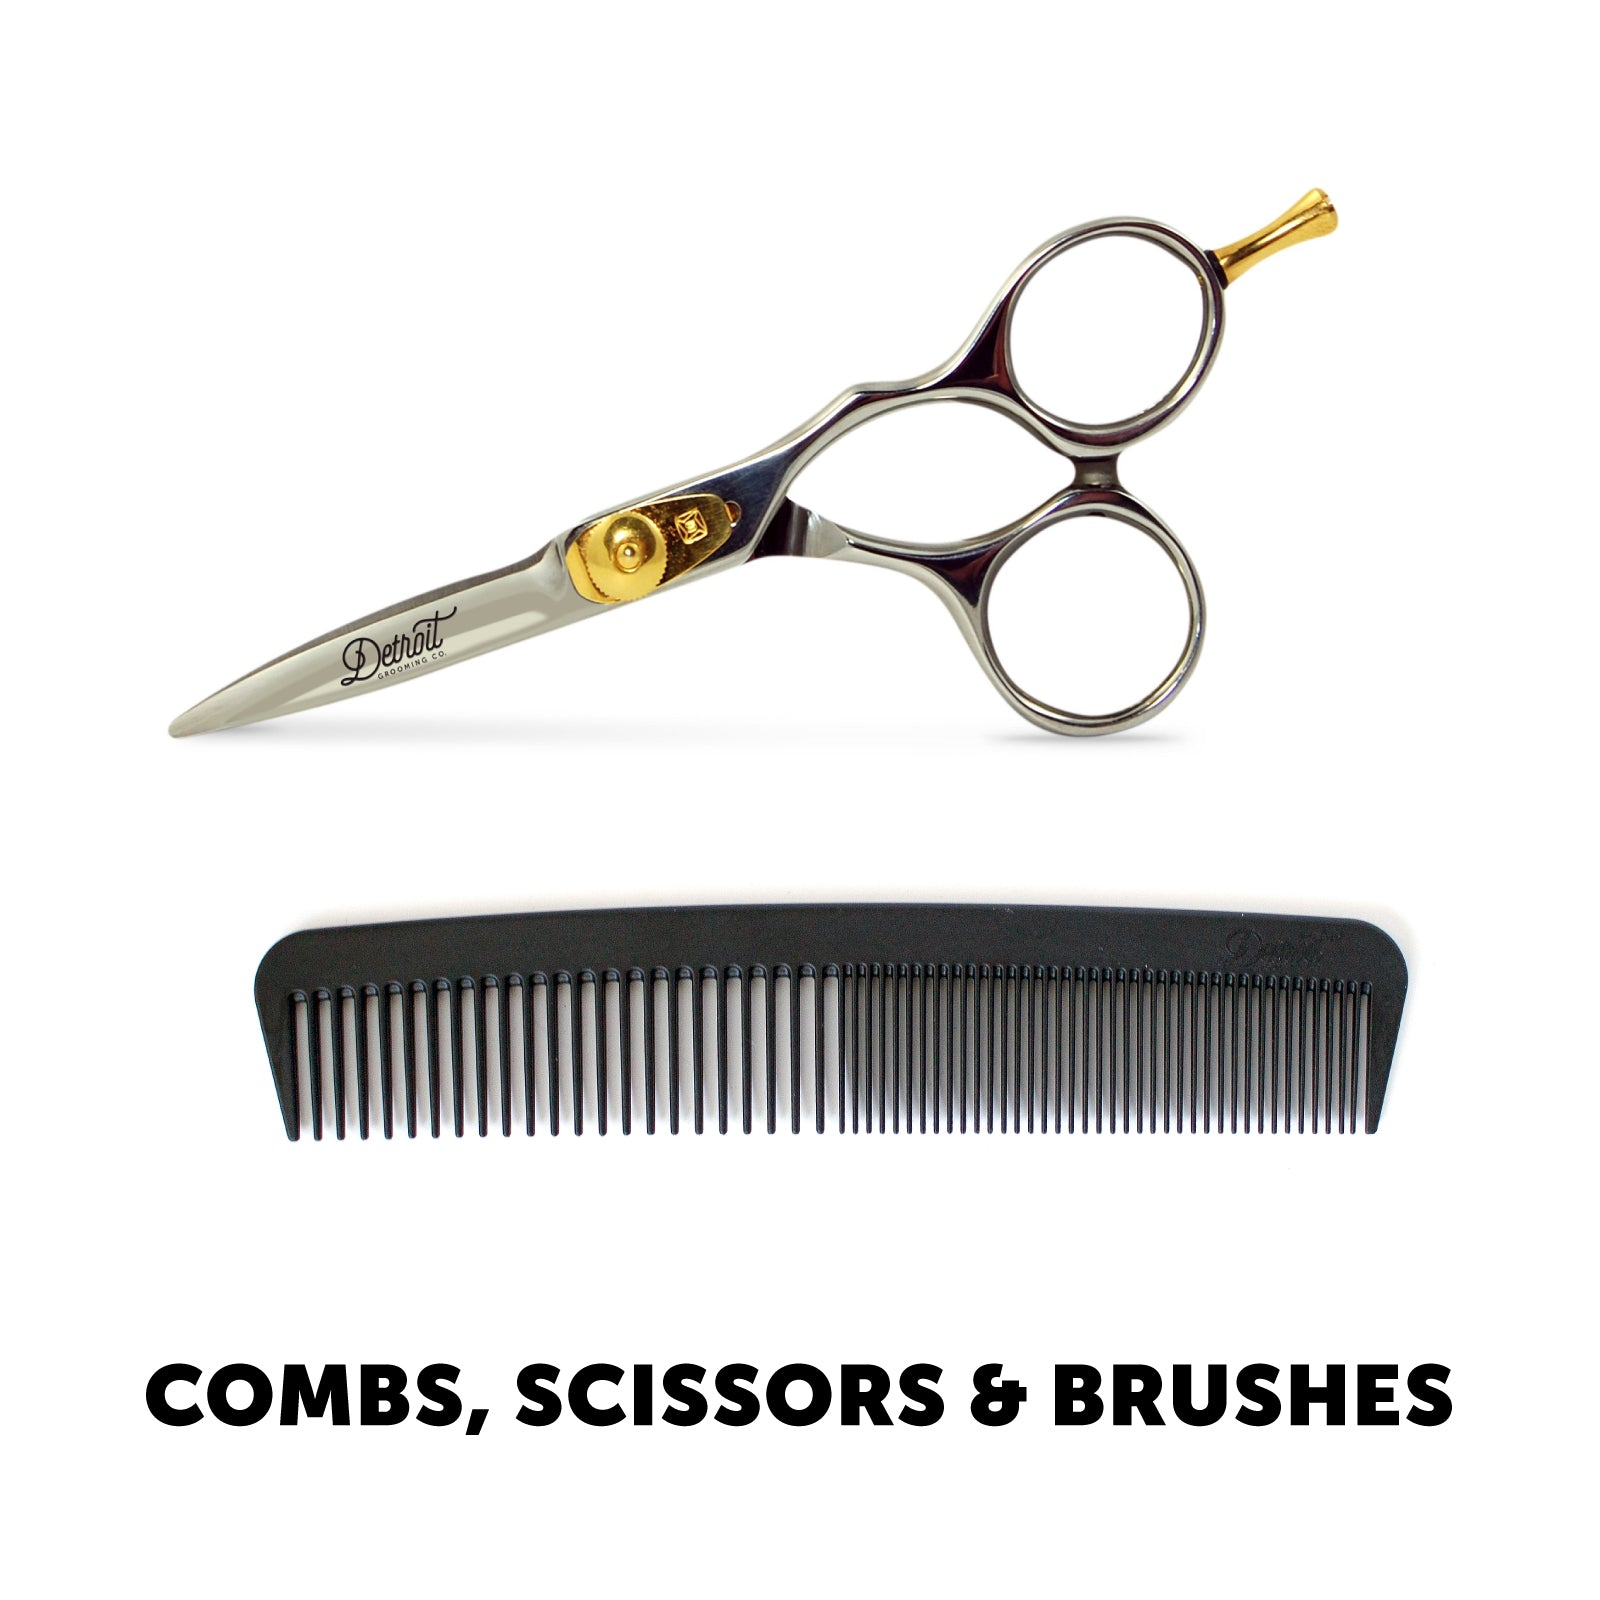 Beard Combs, Hair Combs, and Scissors Collection